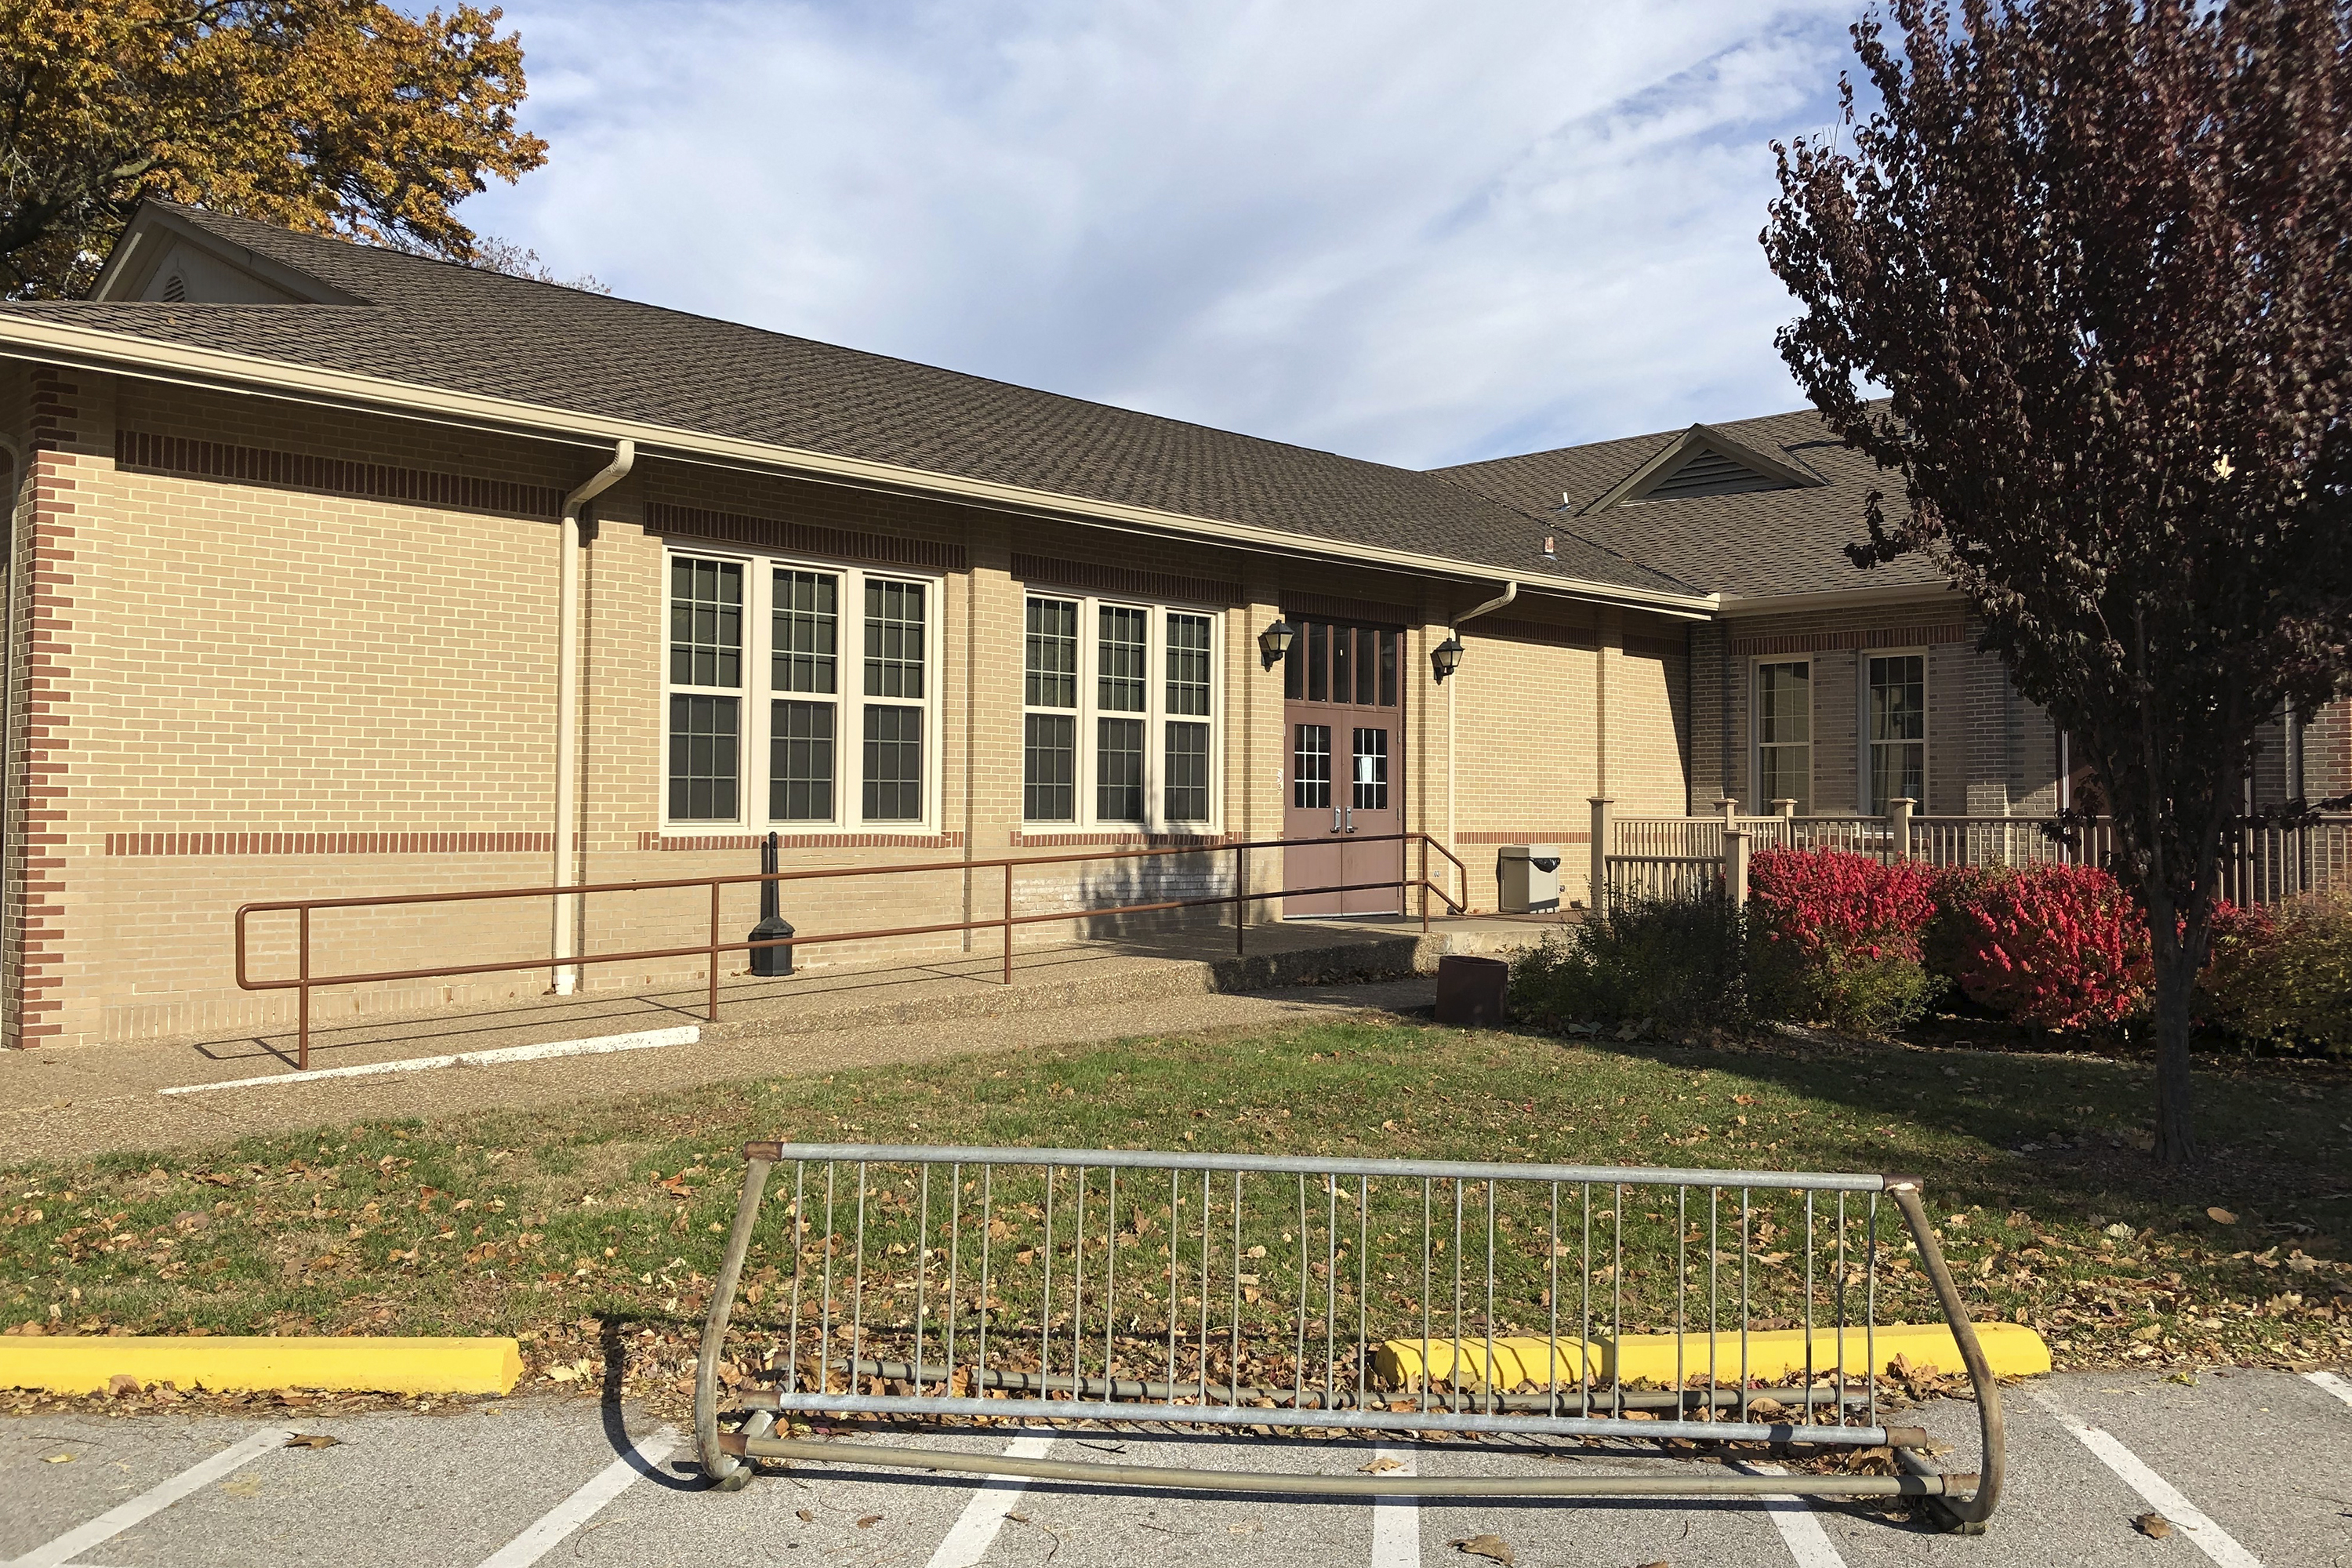 Missouri poll worker kept COVID diagnosis mostly to herself